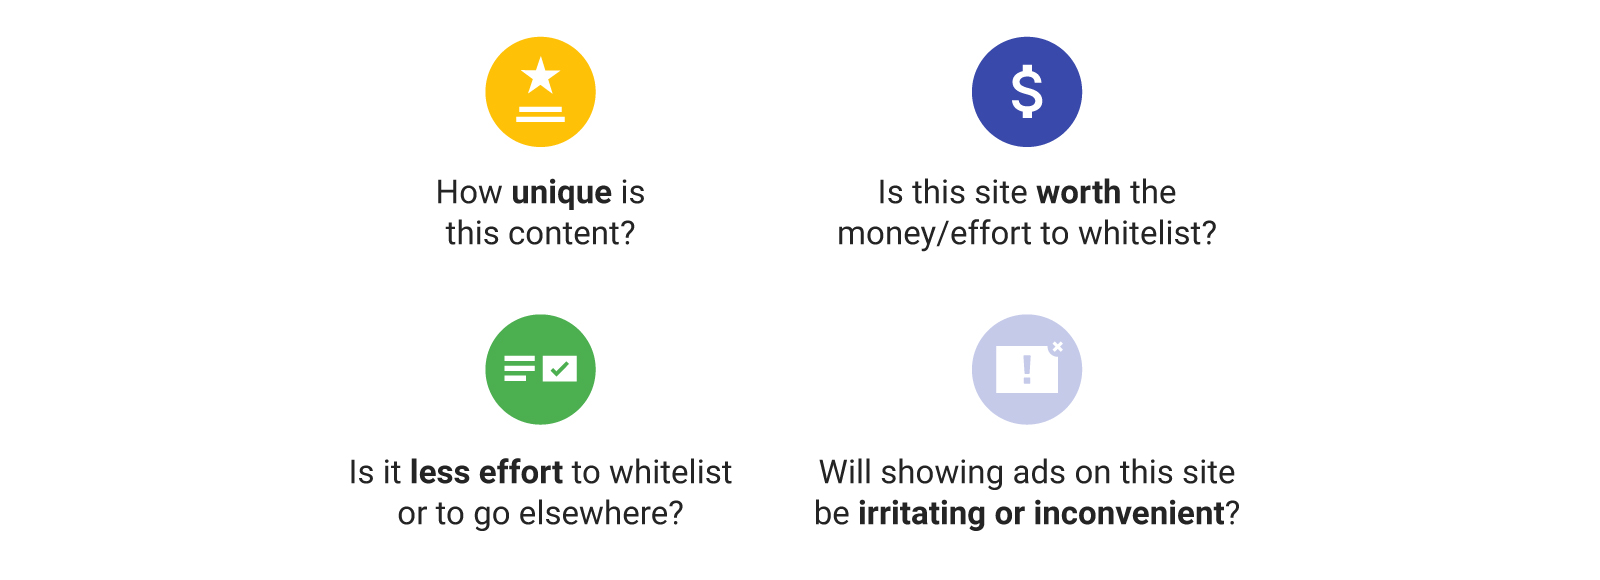 How unique is the content? Is the site worth the money/effort to whitelist? Will ads be irritating or inconvenient? Is it less effort to go elsewhere?